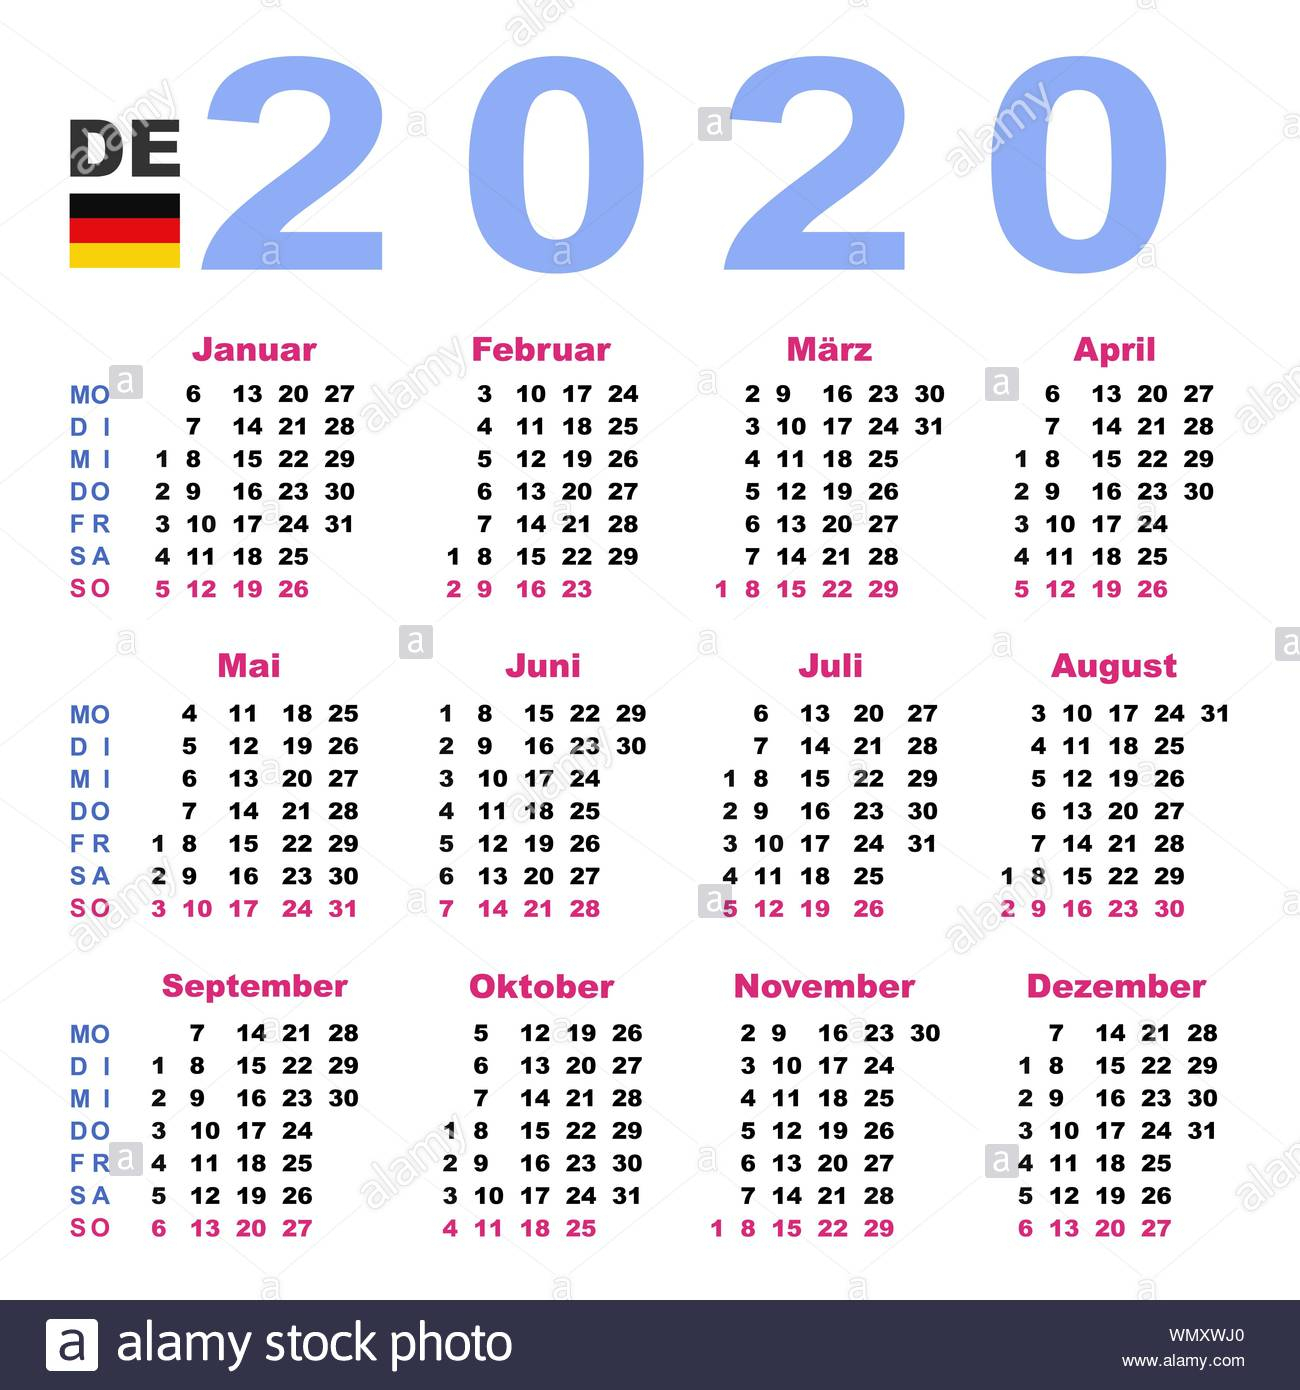 Calendar 2020 Stock Photos & Calendar 2020 Stock Images - Alamy